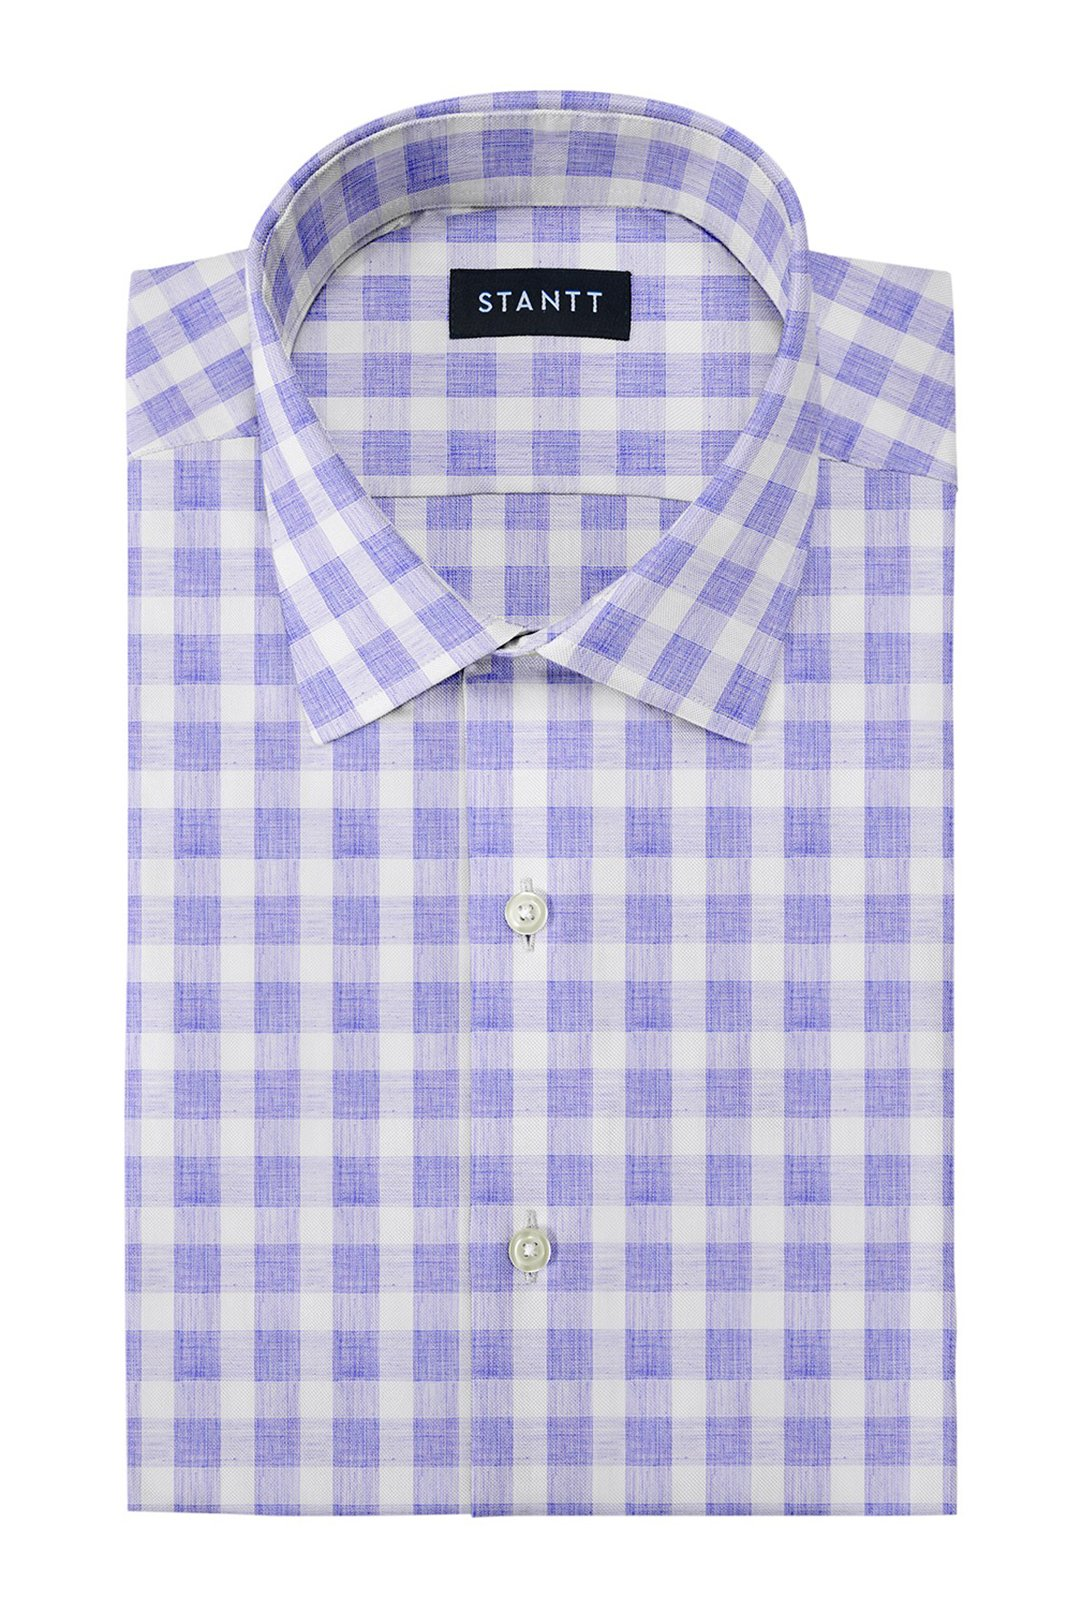 Heather Blue Buffalo Check: Modified-Spread Collar, French Cuff